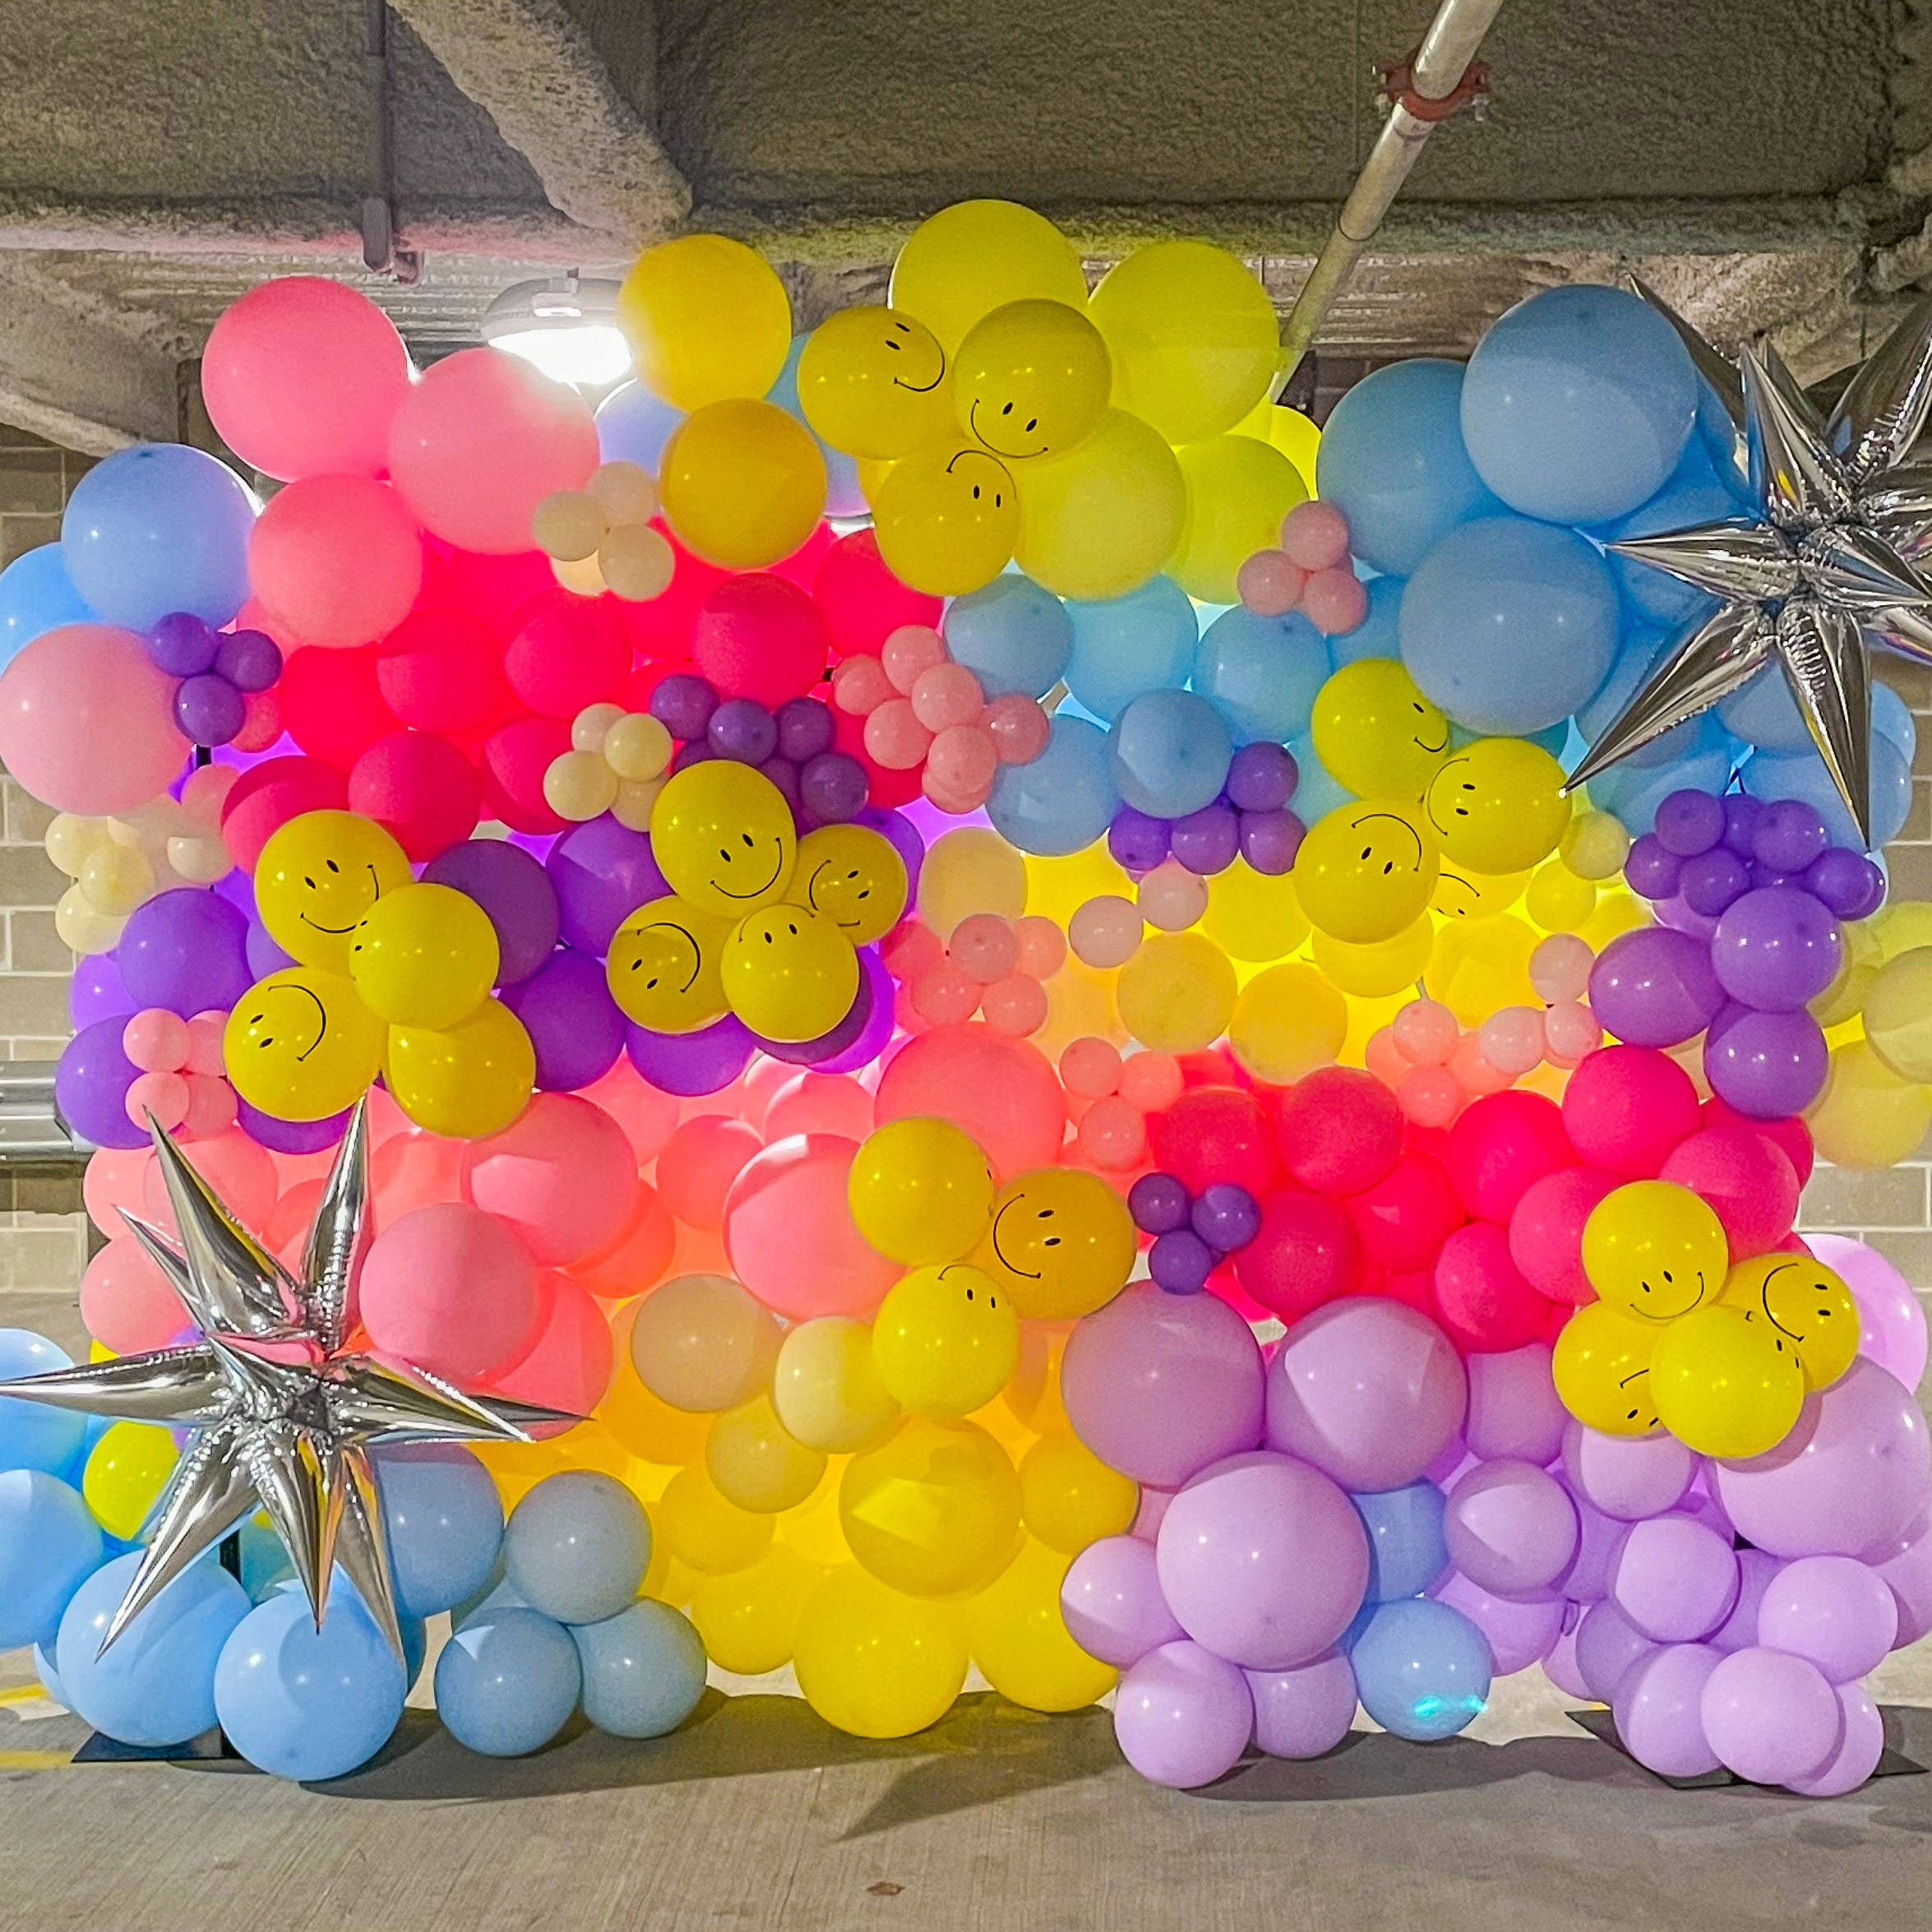 A bright colored balloon wall with yellow, blue, purple, and pink balloons.